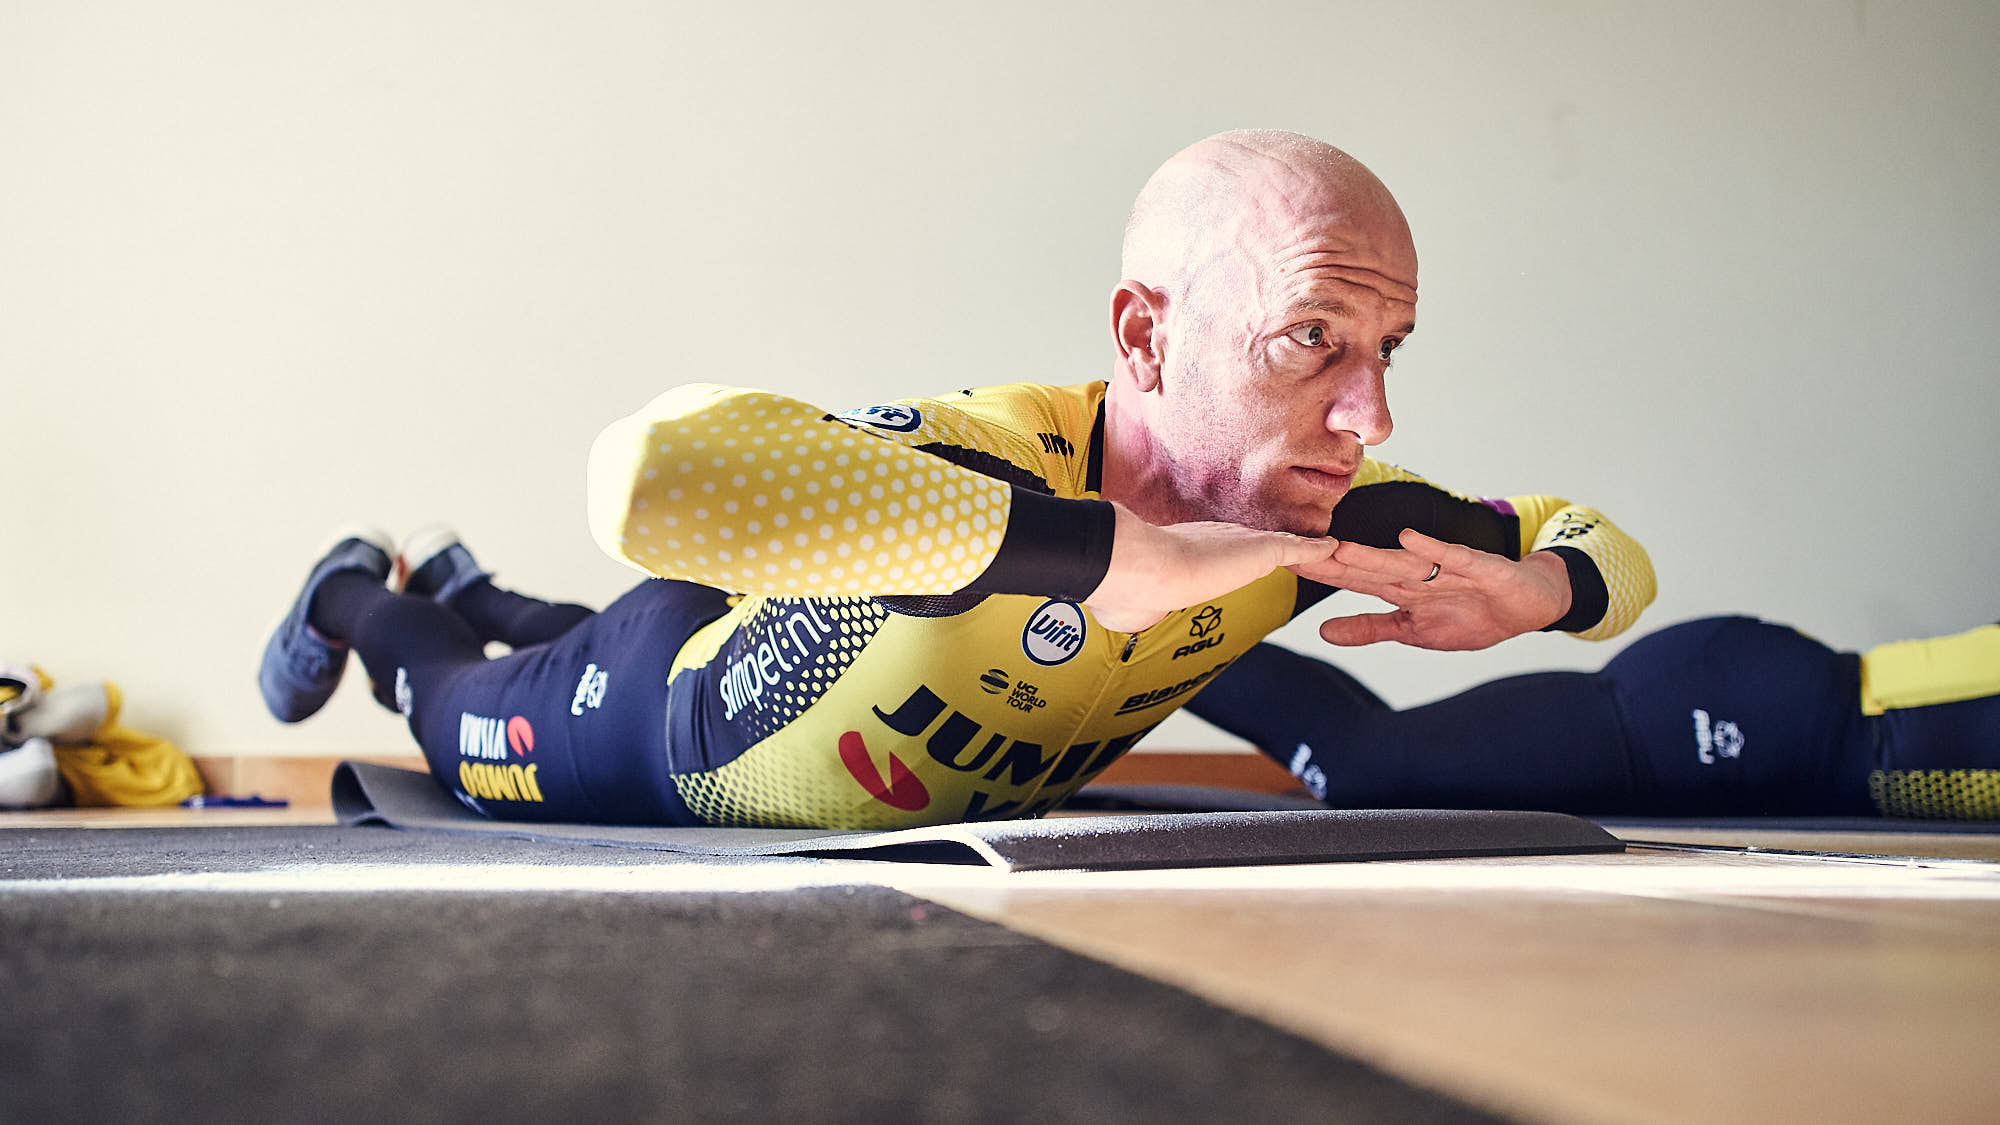 Jumbo-Visma cyclist Jos van Emden working out